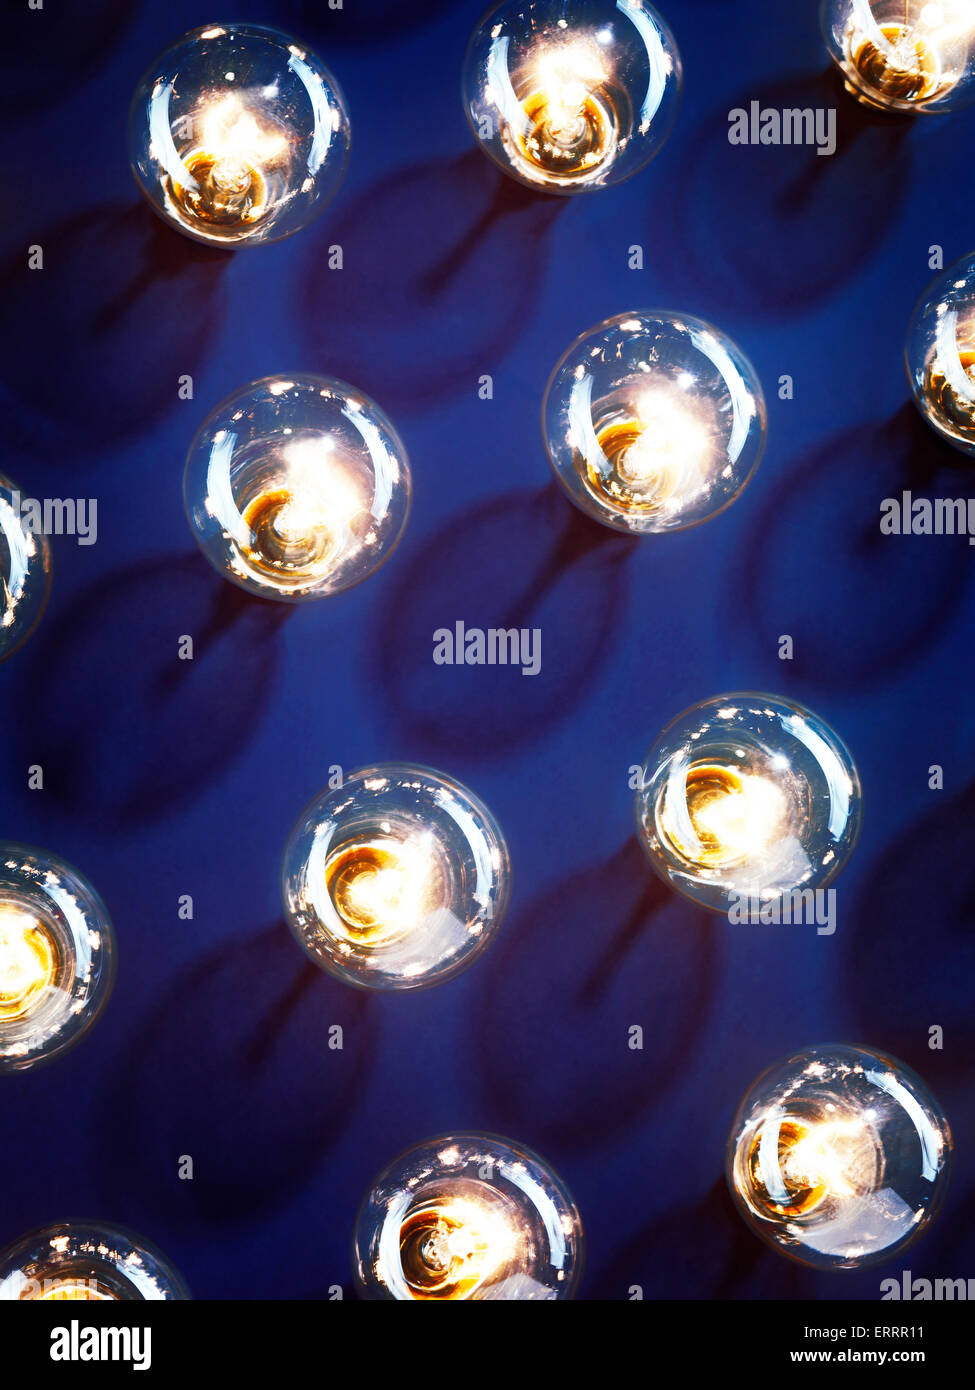 A group of illuminated incandescent light bulbs shining on blue background - Stock Image